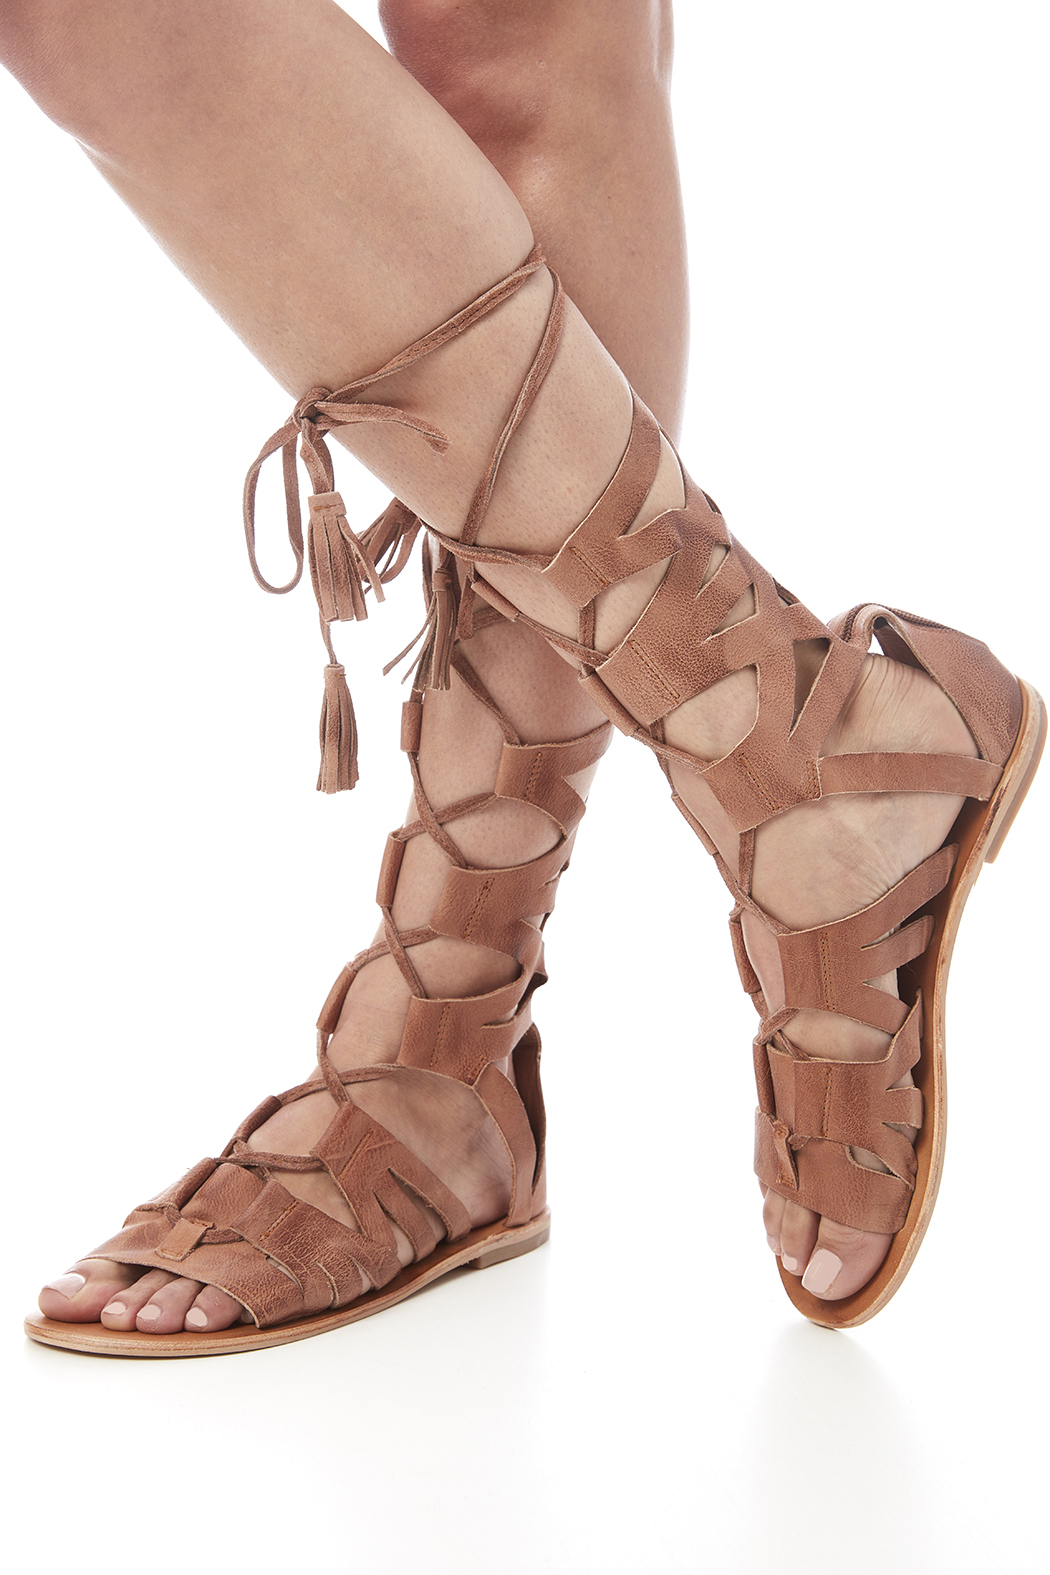 b5ea44099989 Pictures of Tan Gladiator Sandals